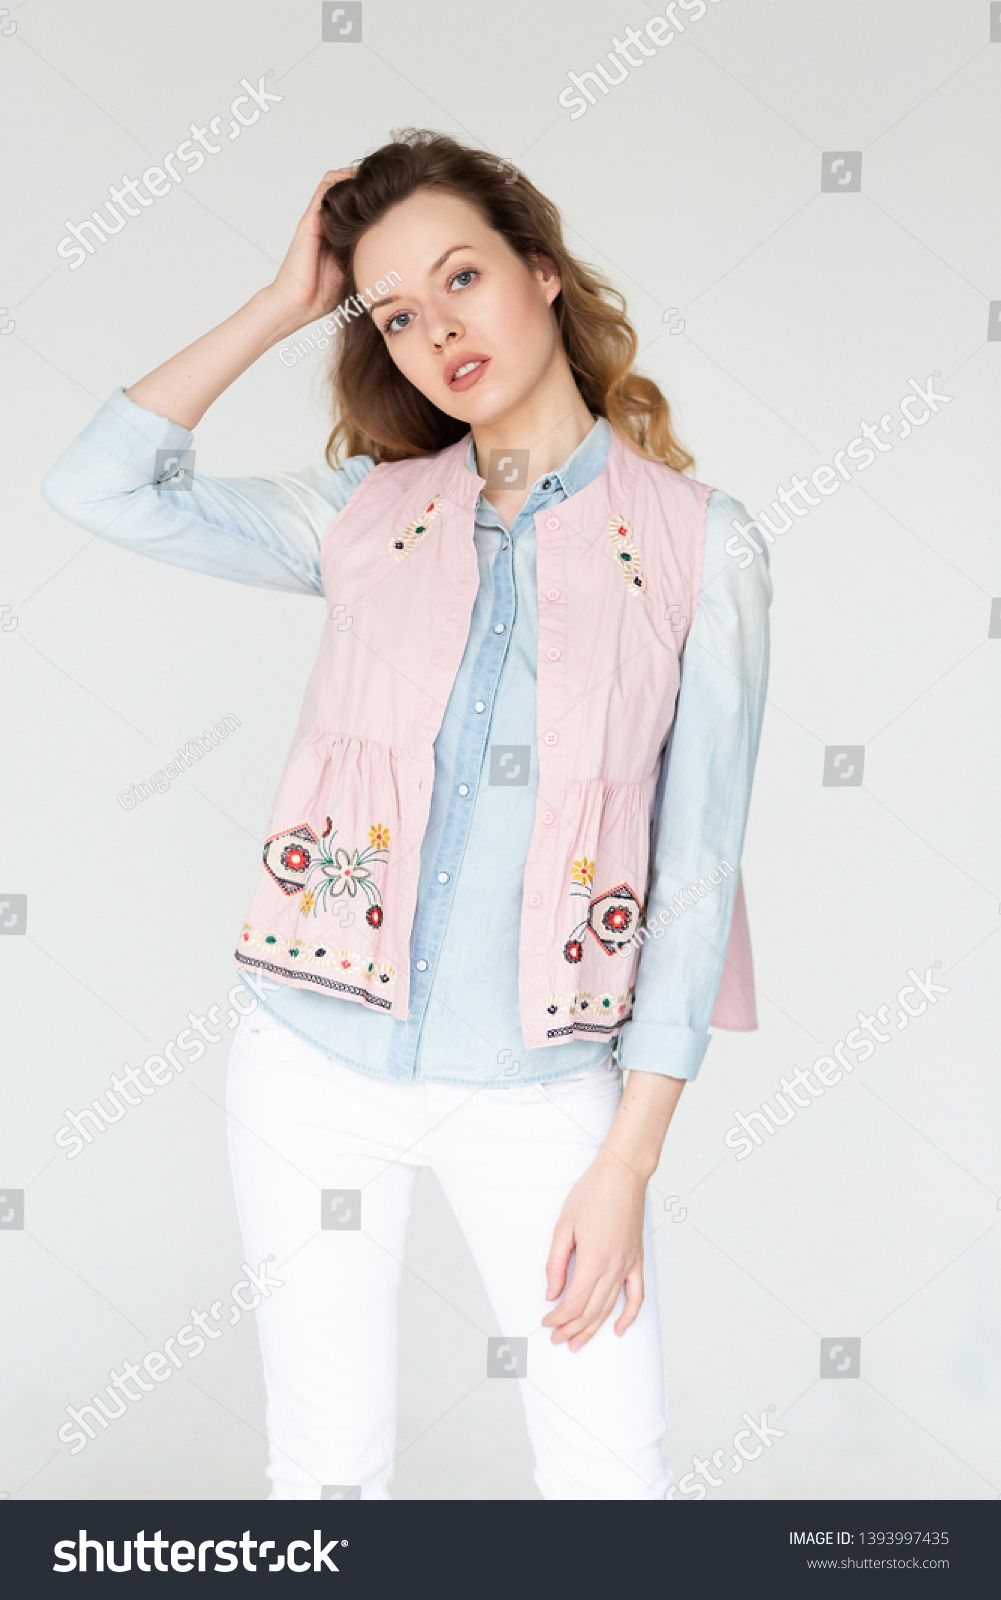 Beautiful Fashion Model Woman With A Casual Hair Style Dressed In Vintage Boho Style Clothes On A Whi Vintage Boho Fashion Casual Hairstyles Boho Style Outfits